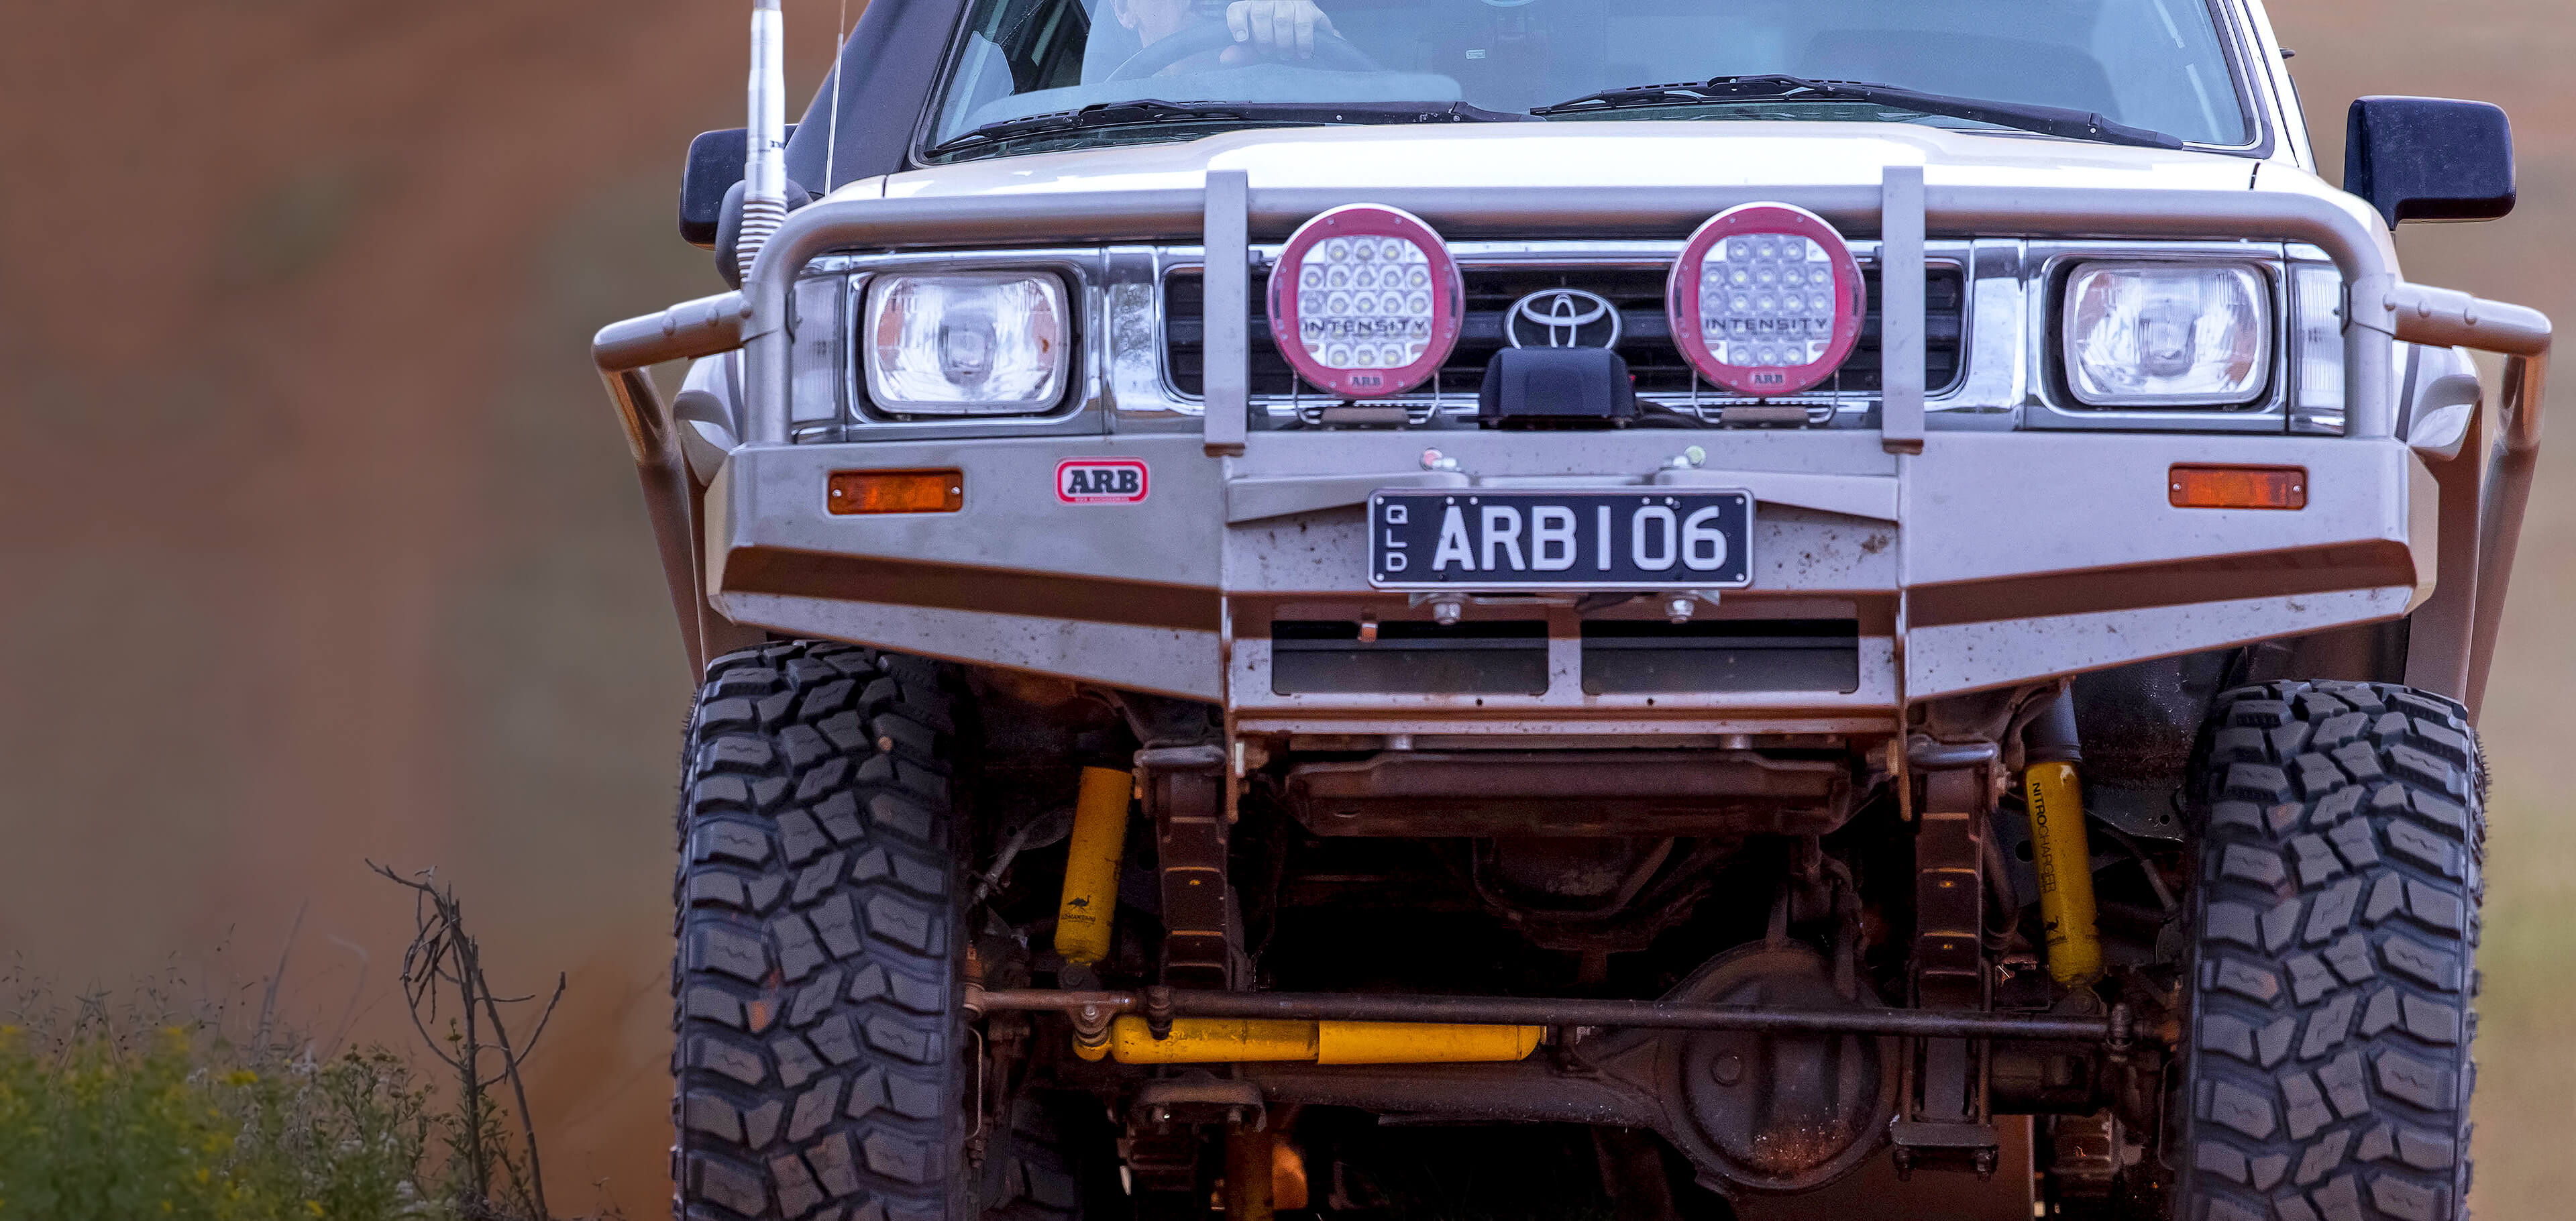 Arb 4 215 4 Accessories Old Man Emu 4x4 Suspension Arb 4x4